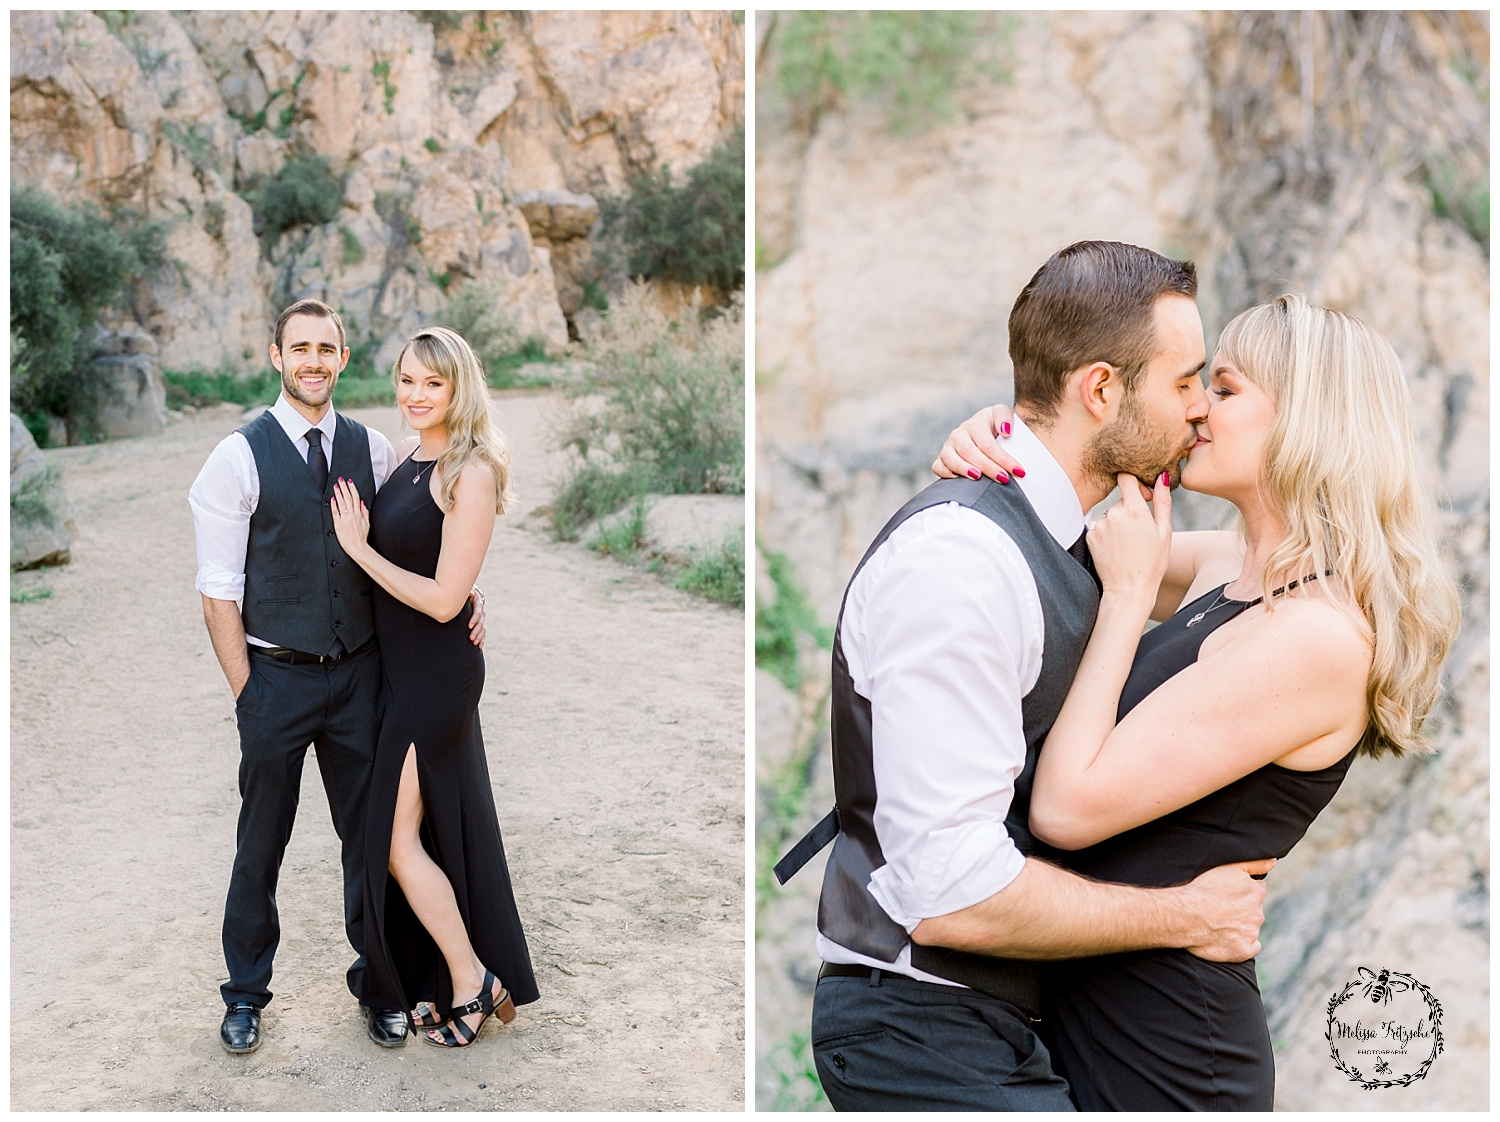 Tucson Desert Engagement Session- Kelly and Ben_0001.jpg